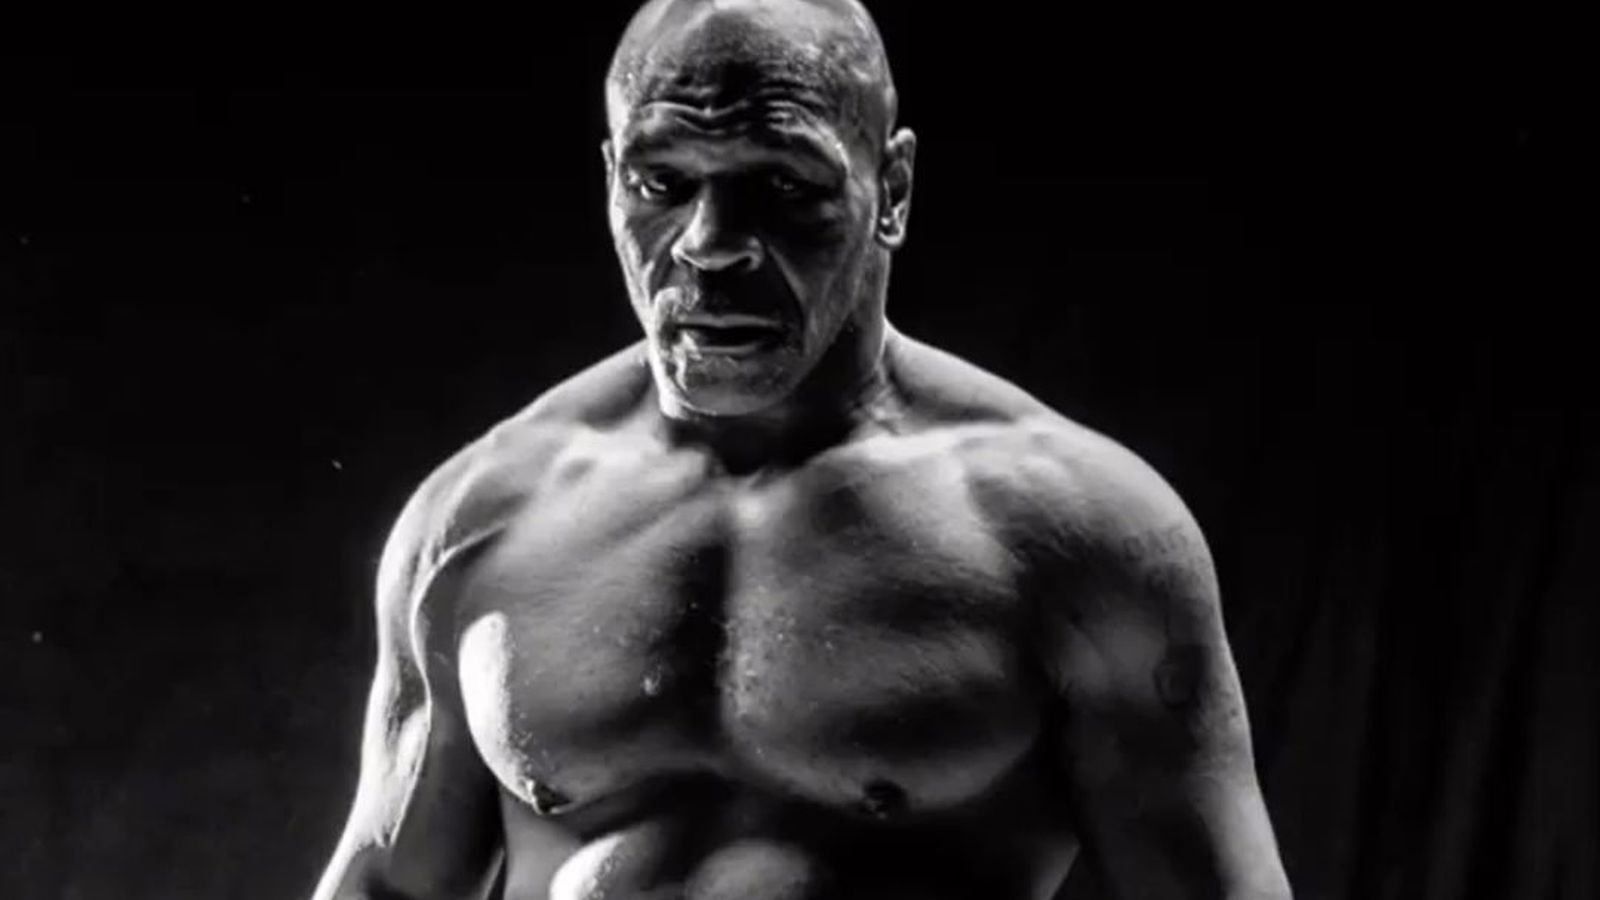 Mike Tyson is fully awake before the boxing match against Roy Jones Jr. (Picture)